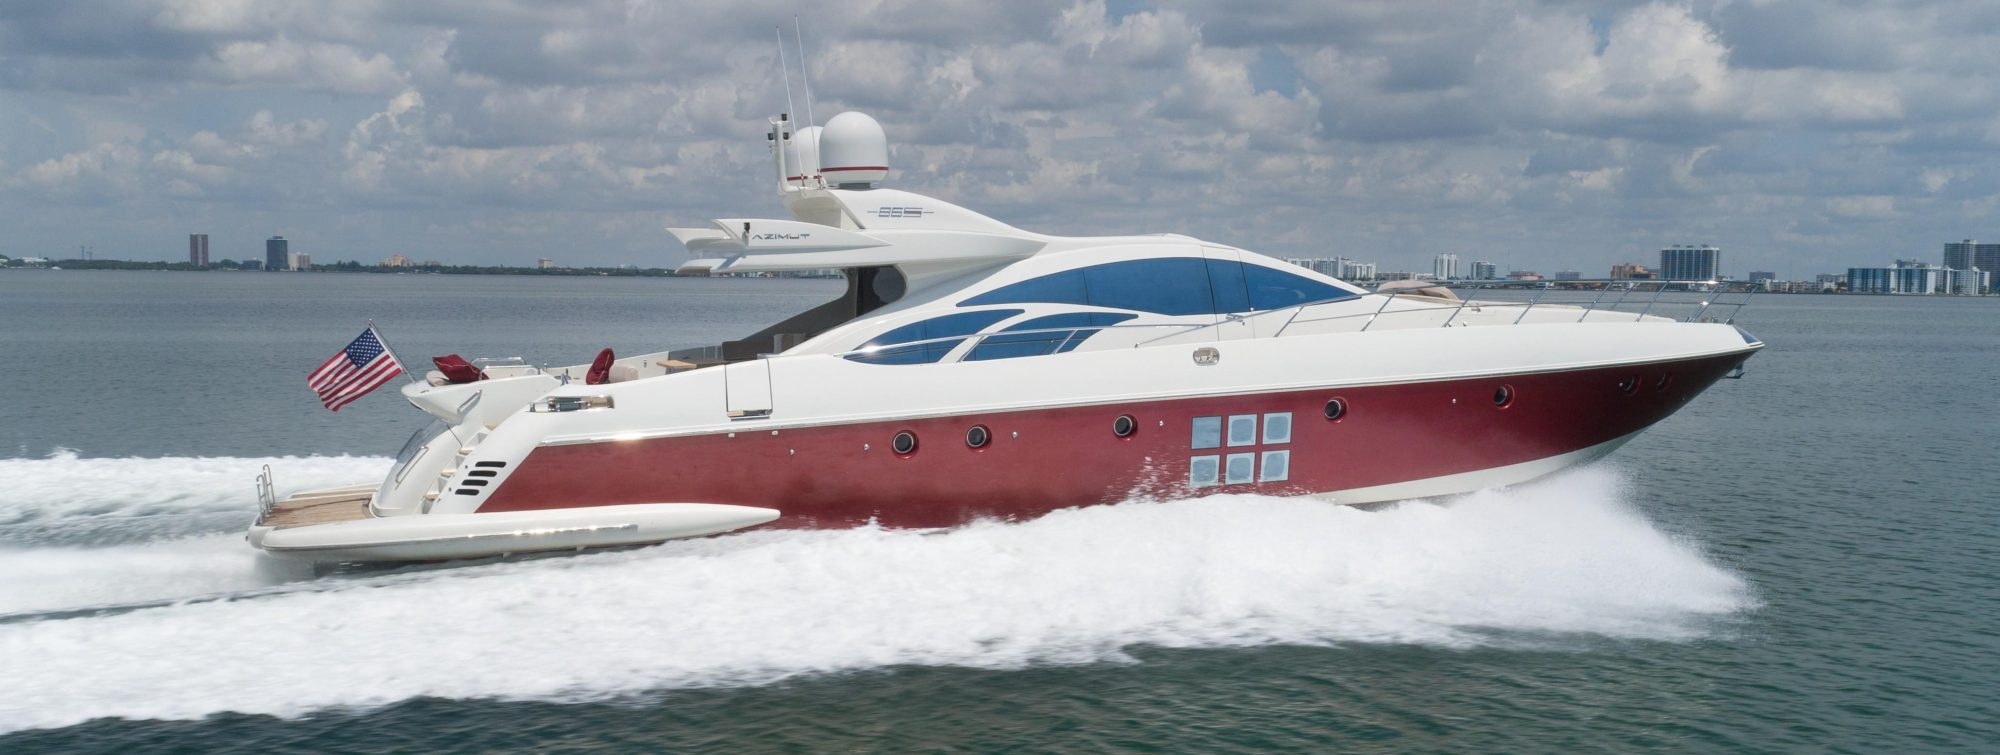 Azimut yacht reduced price